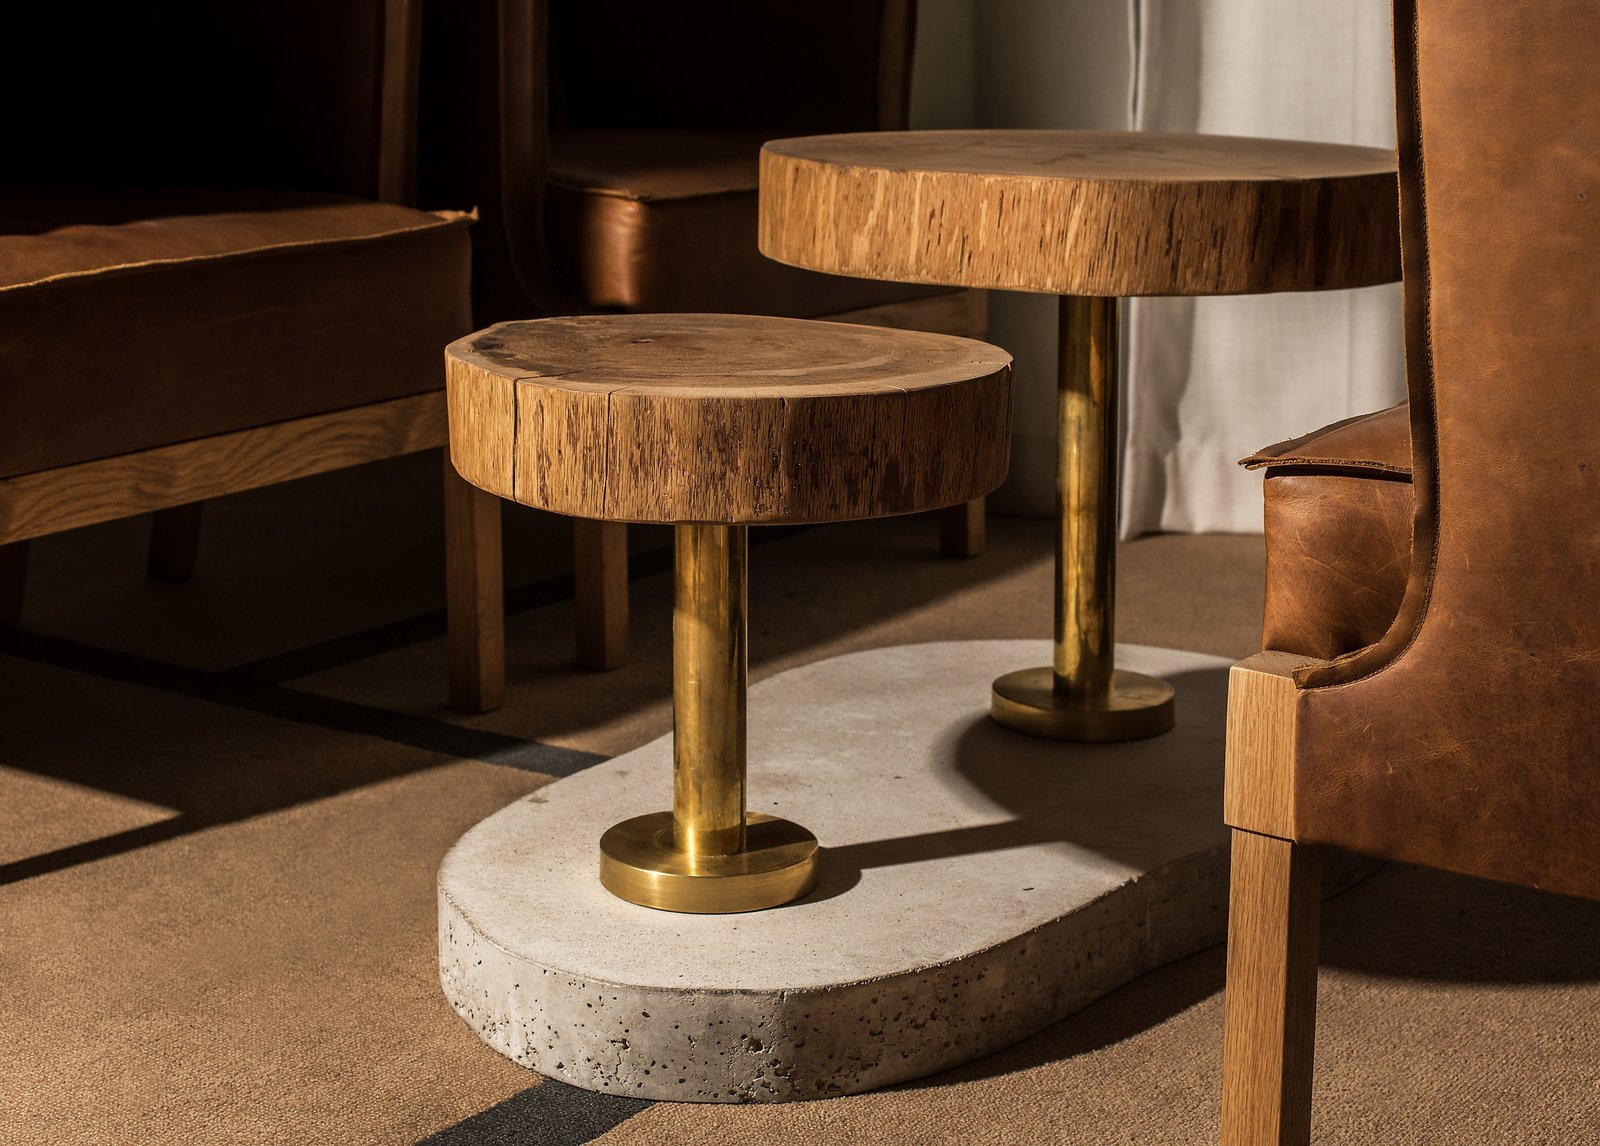 Keeping with the principles of organic architecture, few materials were used. Here, leather, brass, oak, and concrete create a natural and warm setting.